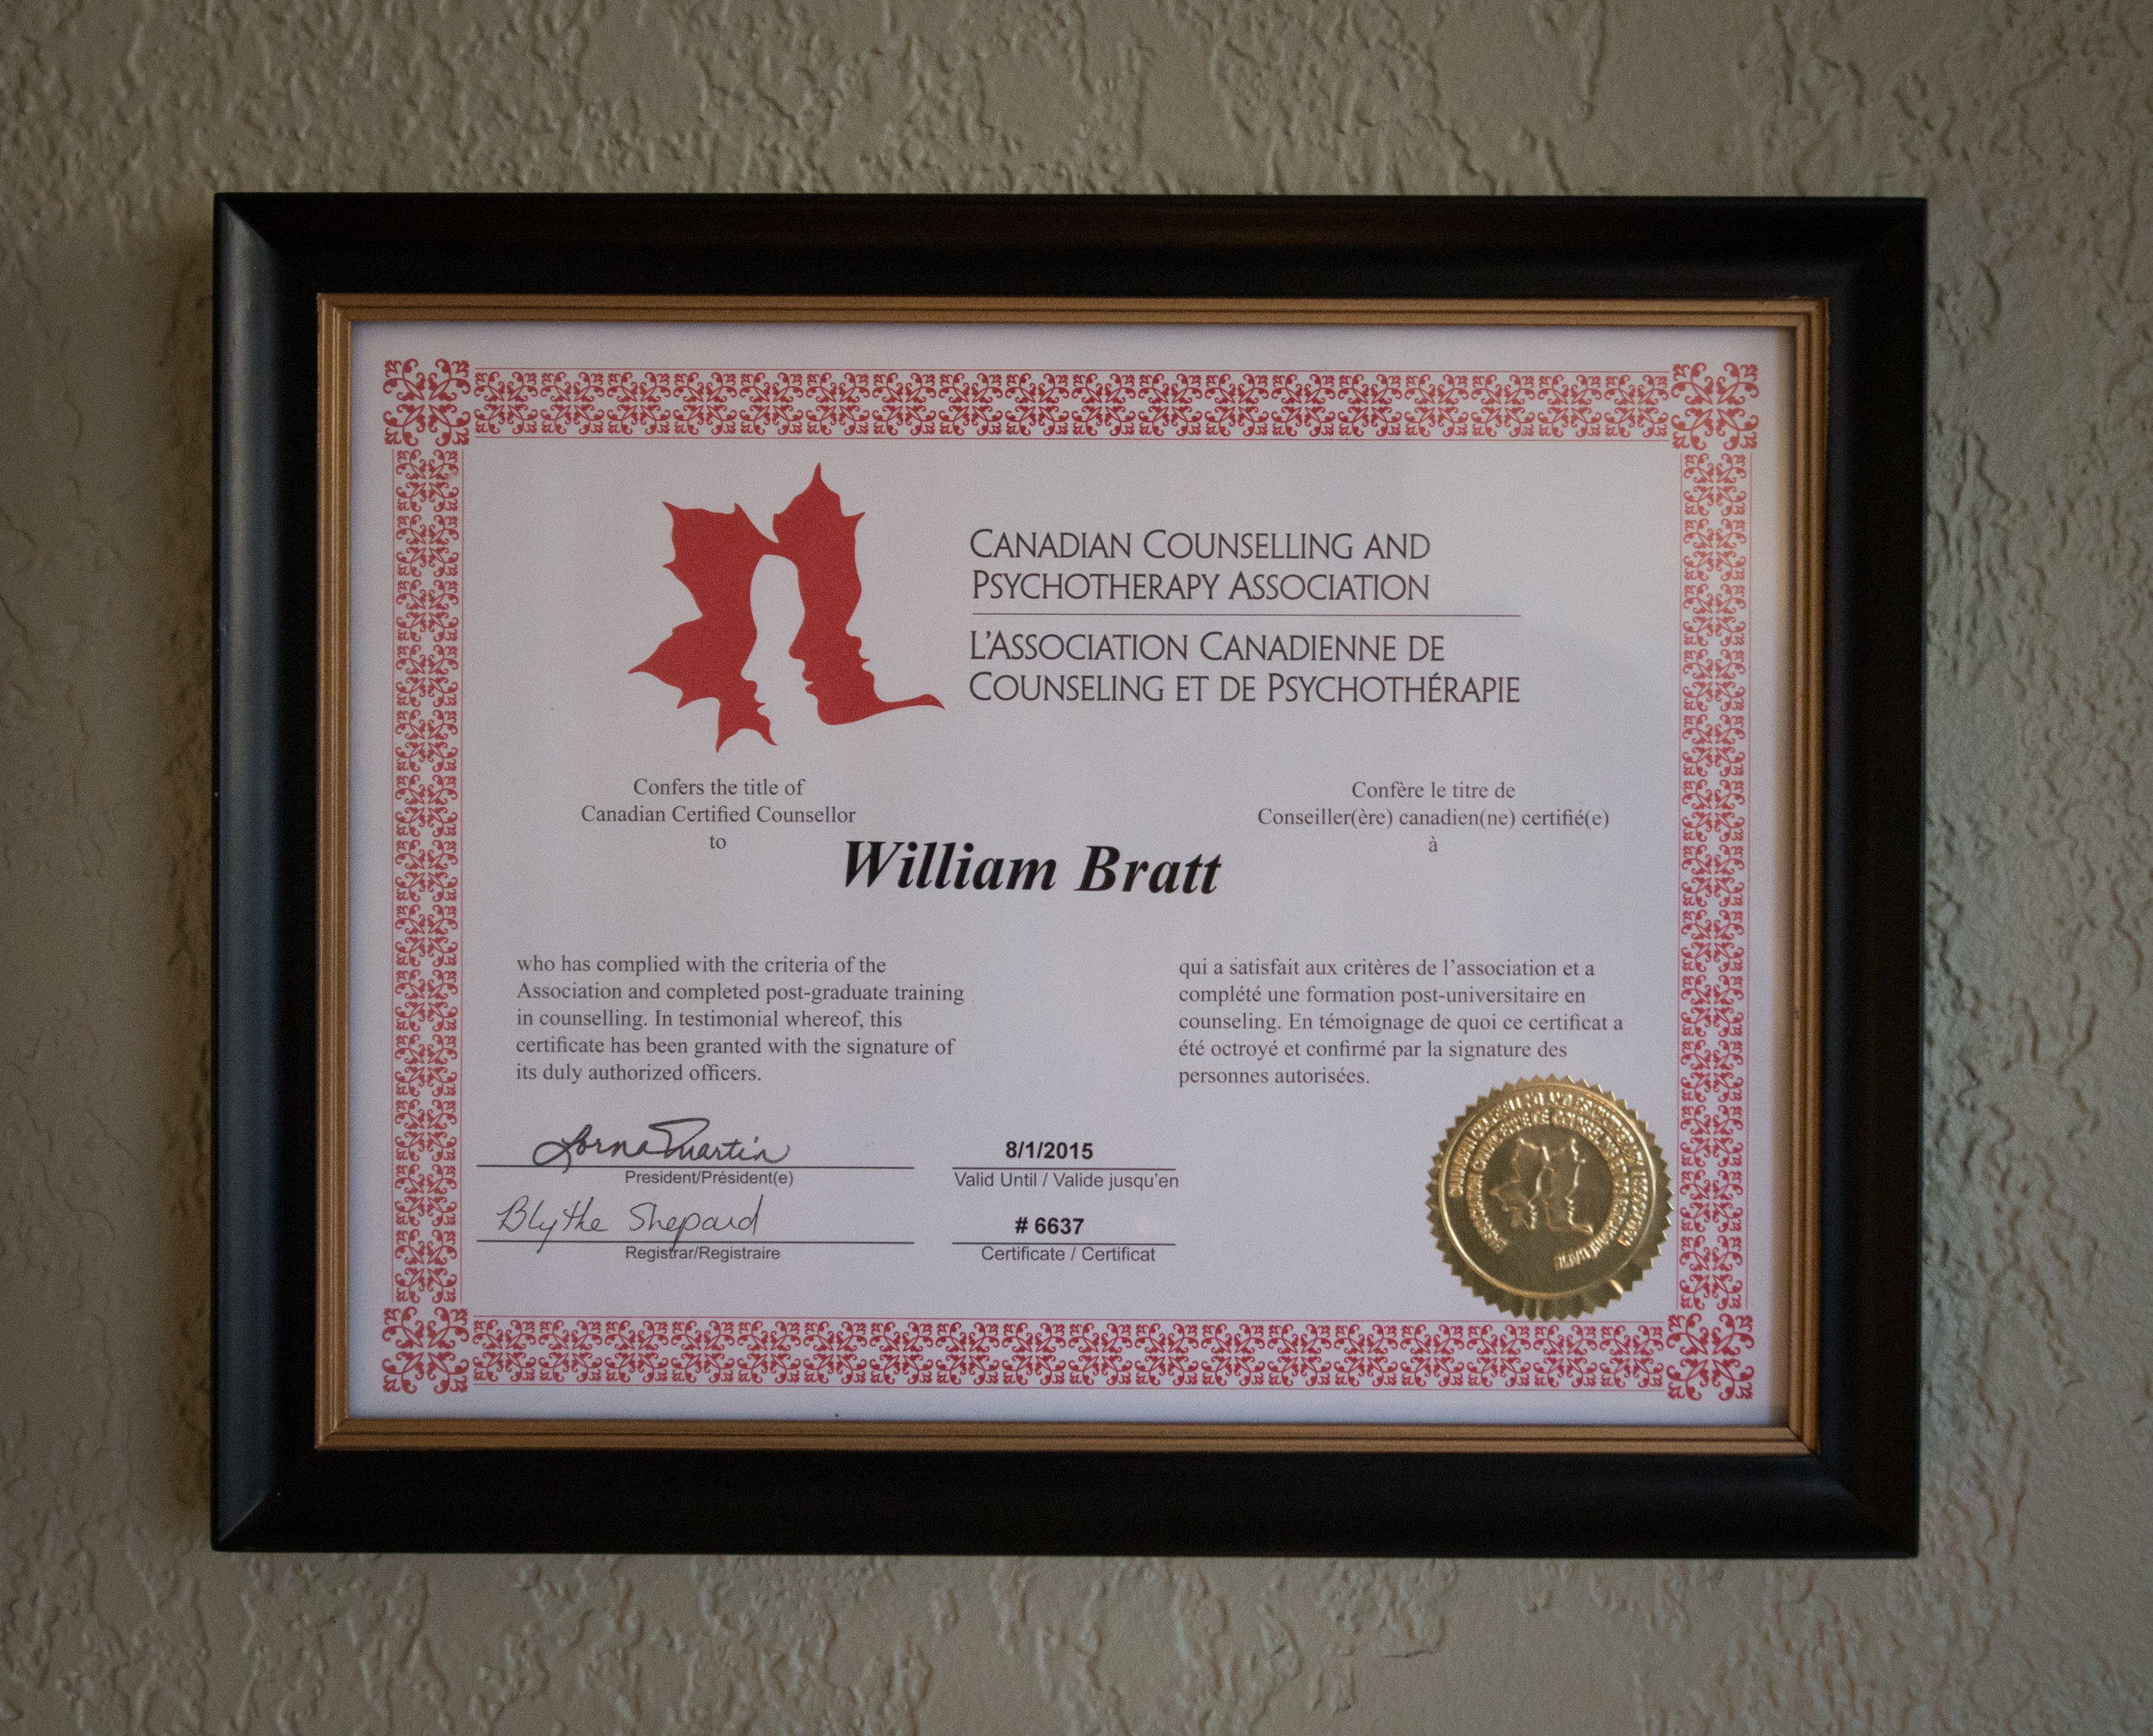 will bratt's counsellor registration with canadian counselling and psychotherapy association